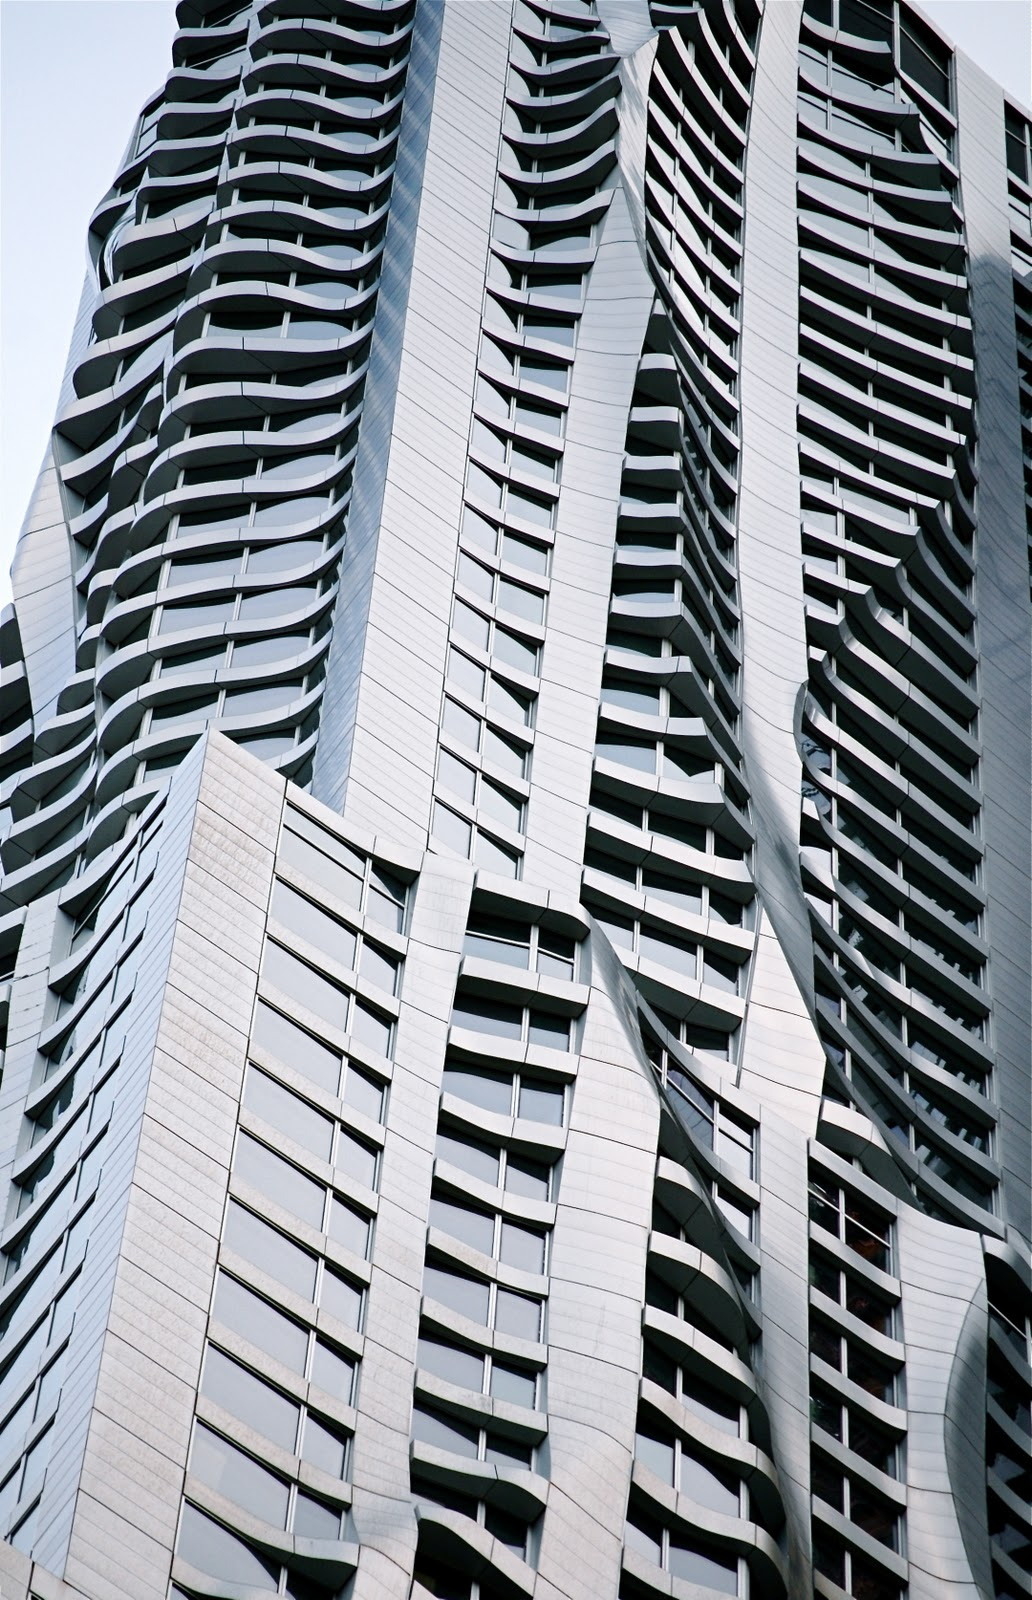 Spruce street beekman tower by frank gehry page 317 - This Is The Much Anticipated Frank Gehry Designed Lower Manhattan Residential Skyscraper And It Is Now Ready For Renters Located At 8 Spruce Street